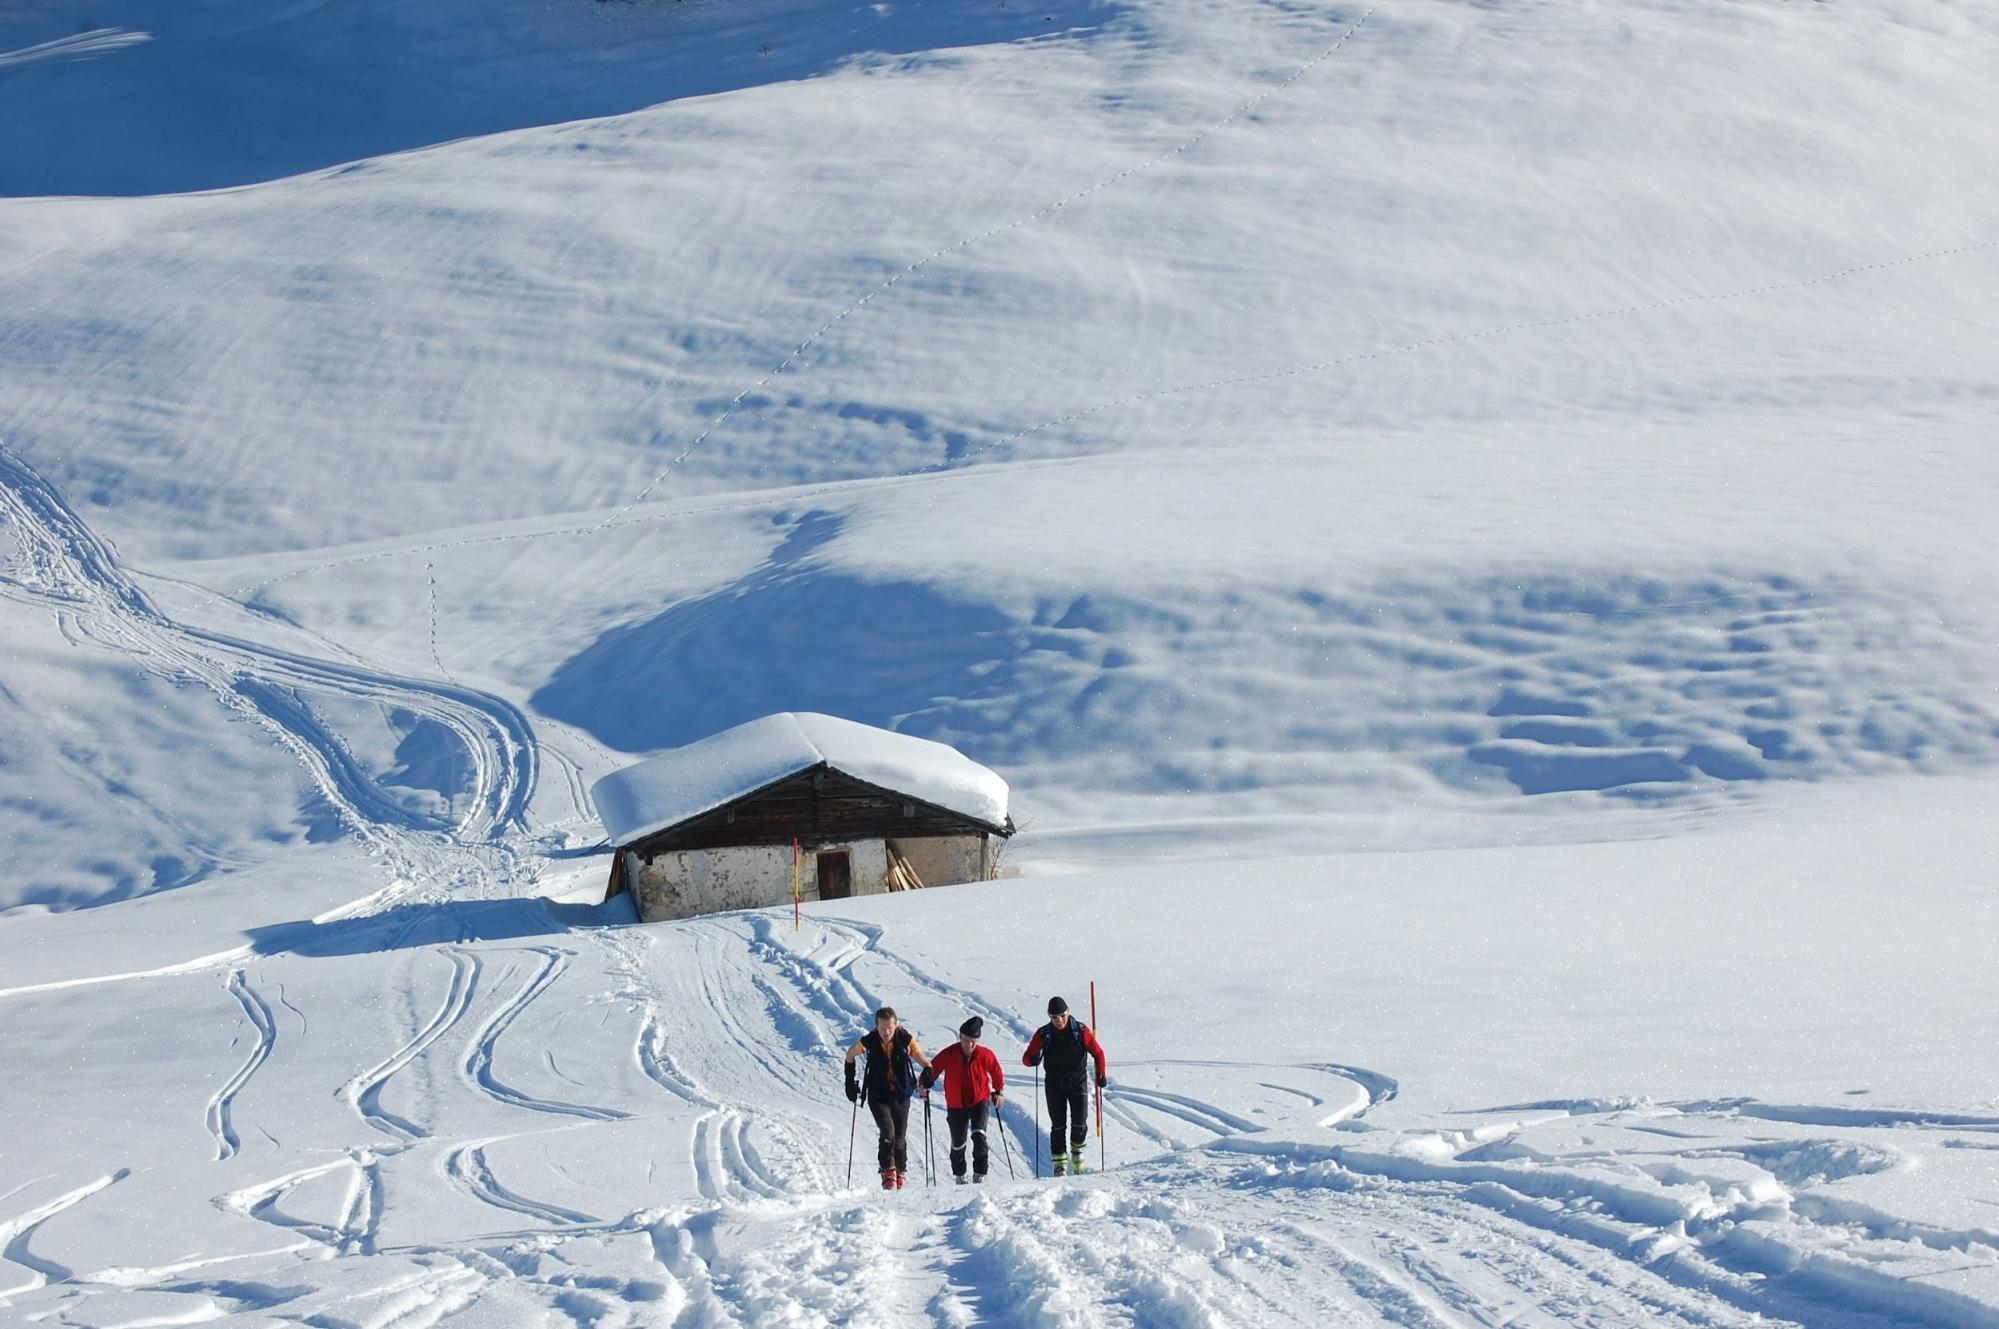 A group of three skiers walking in the snow backdropped by a chalet.